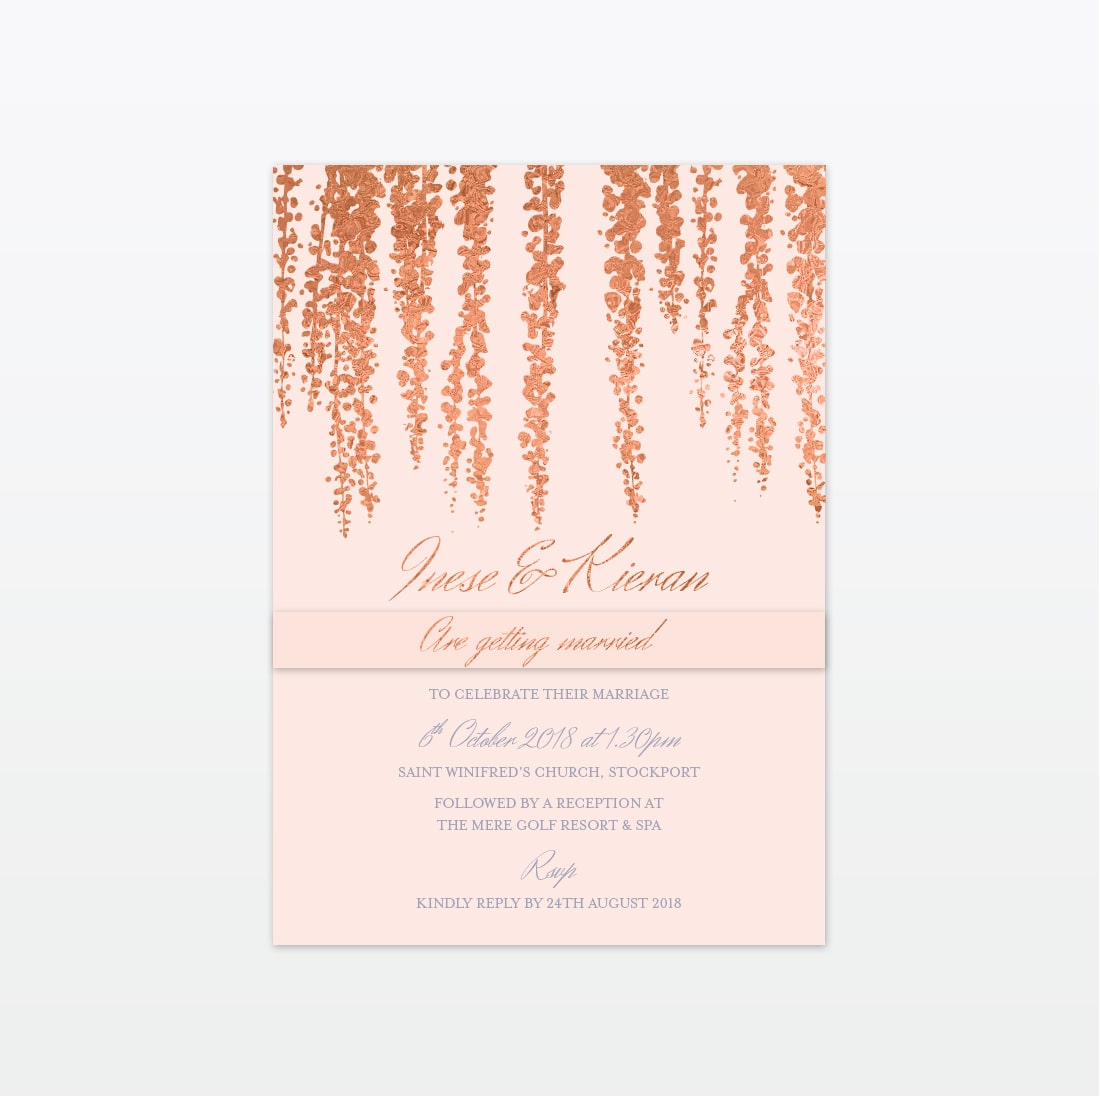 Love Invited bespoke wedding Stationery